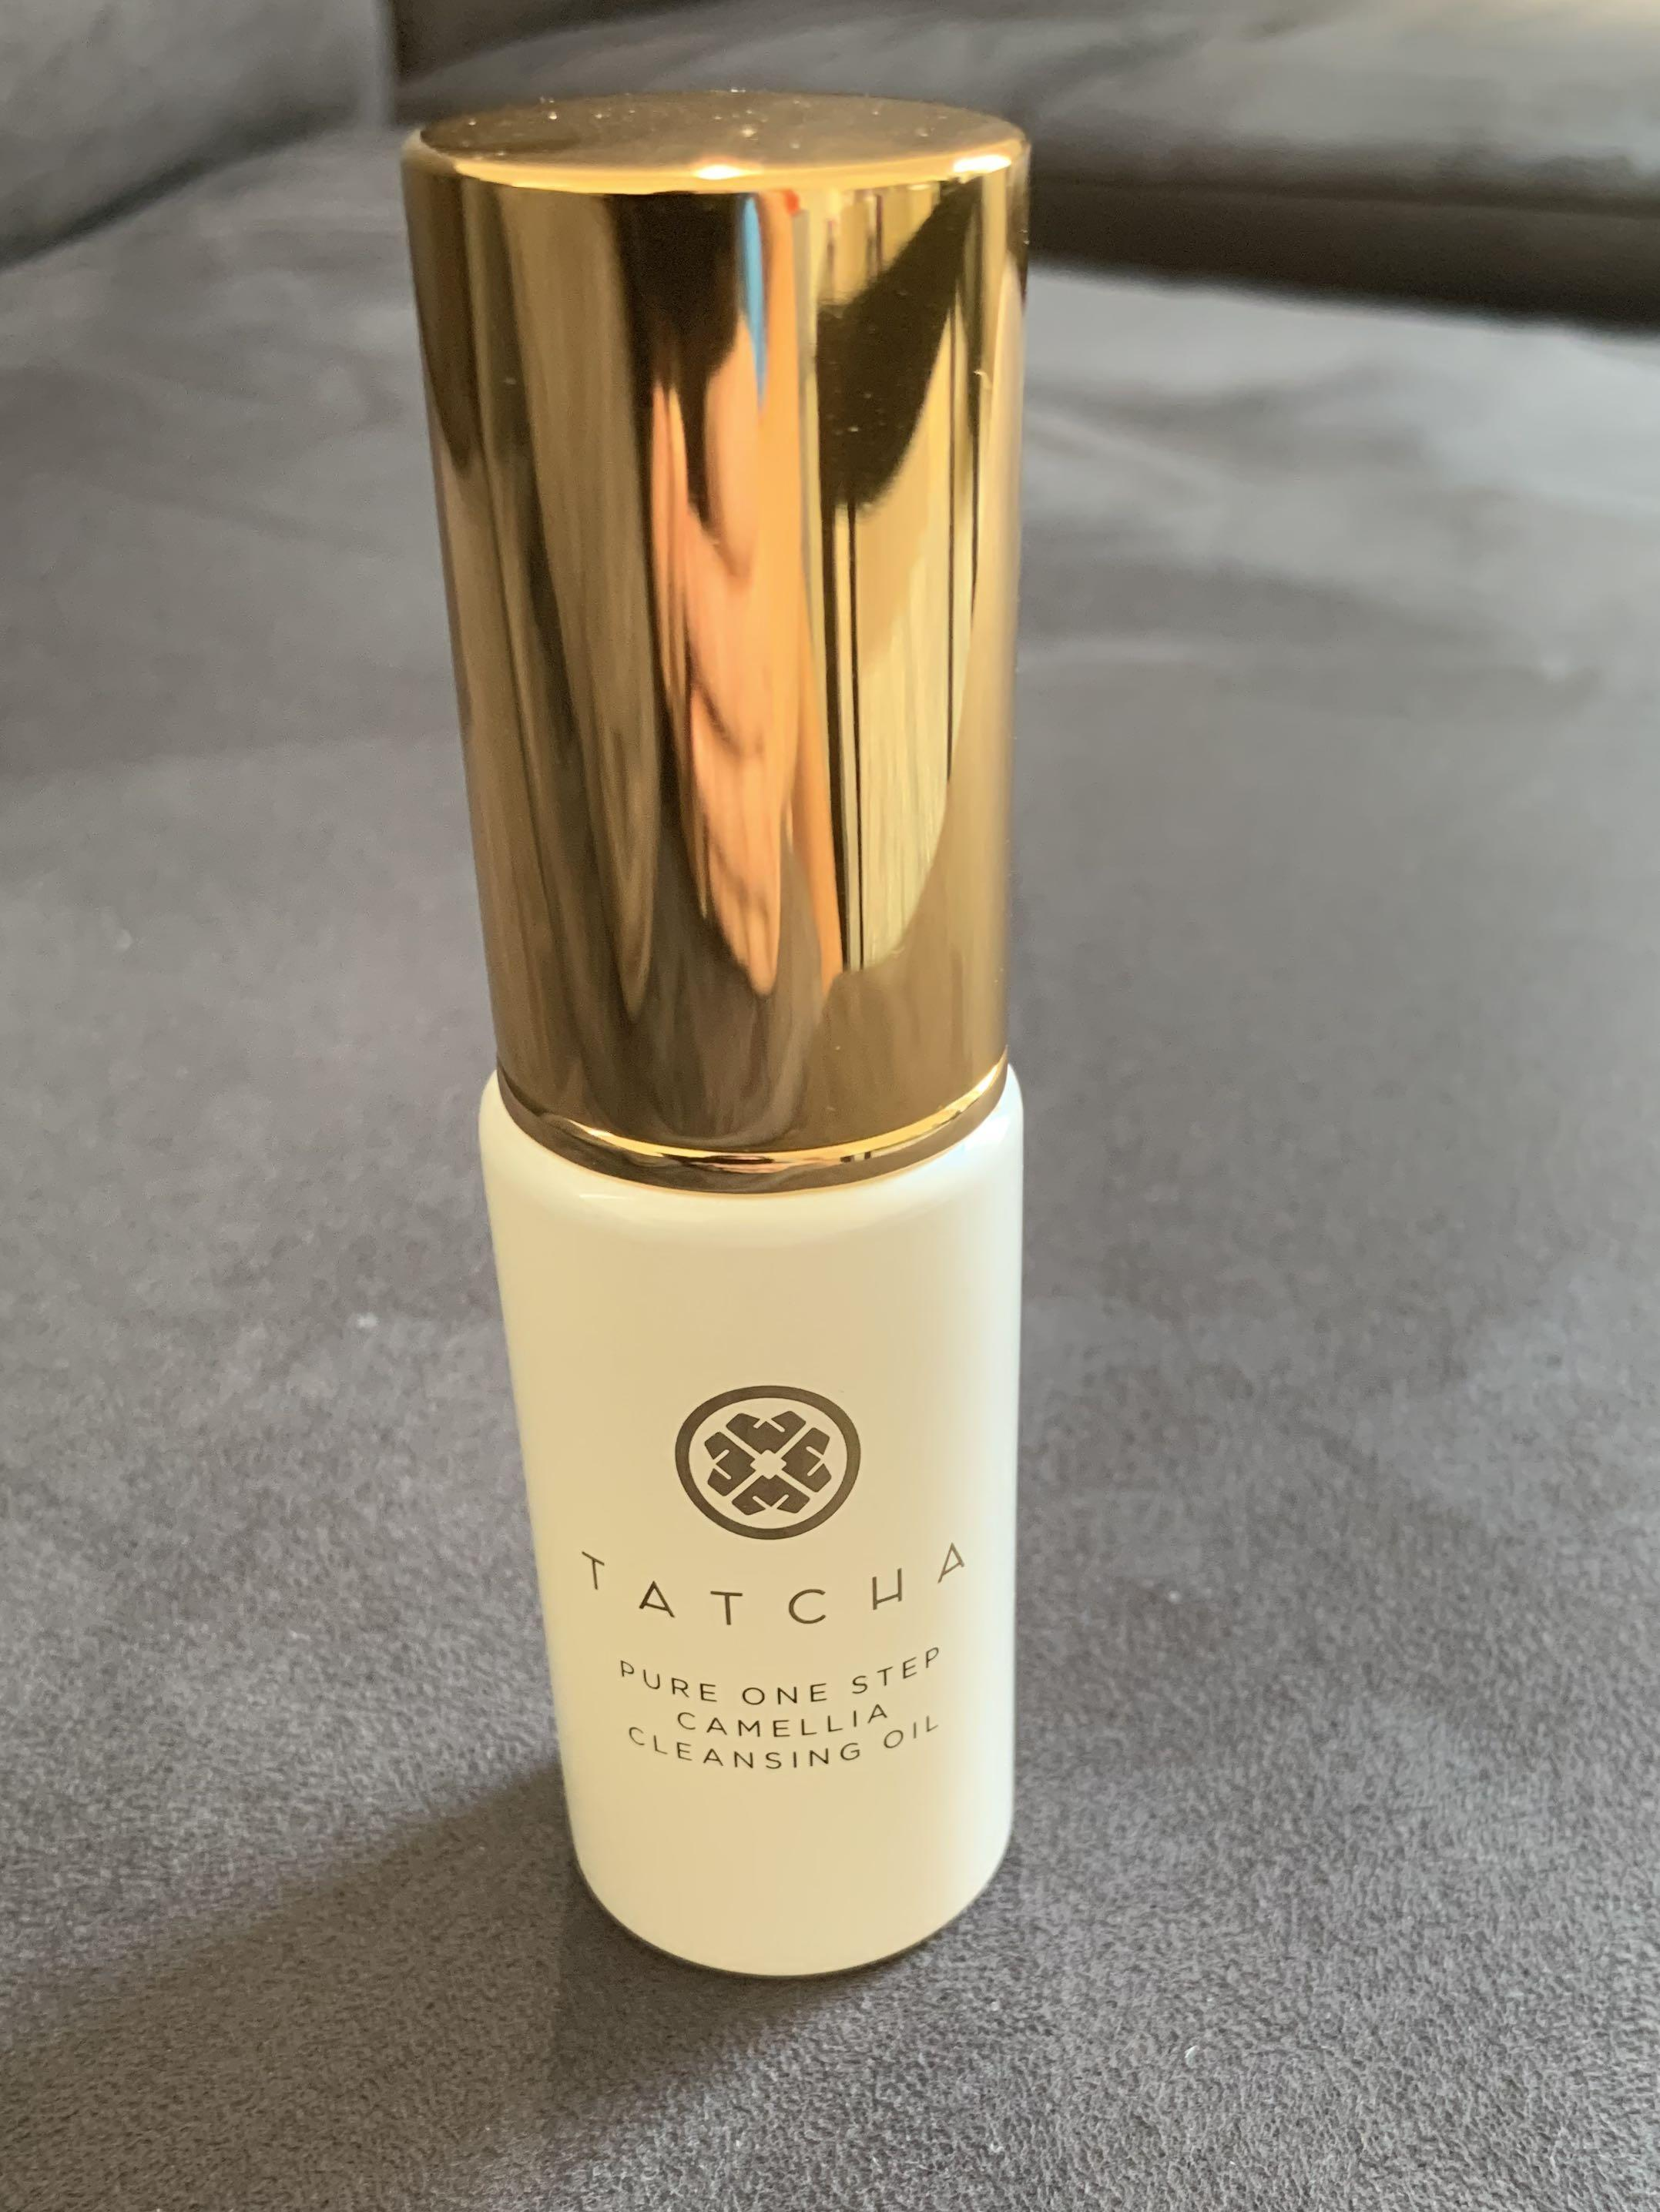 Tatcha one step camellia cleansing oil 25ml travel size